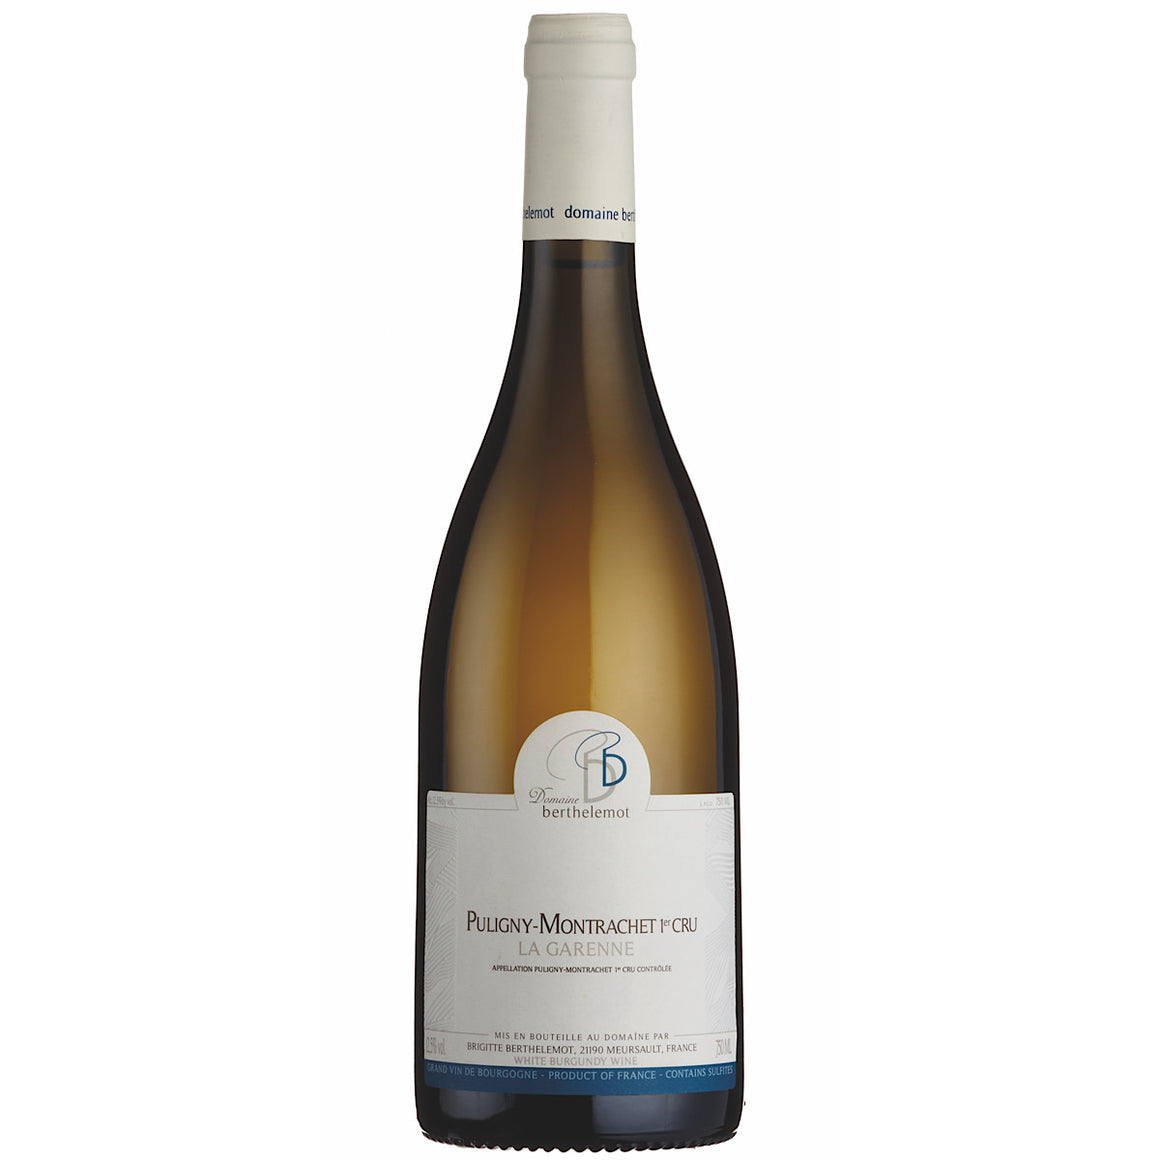 Domaine Berthelemot Puligny-Montrachet La Garenne 6 Bottle Case 2017